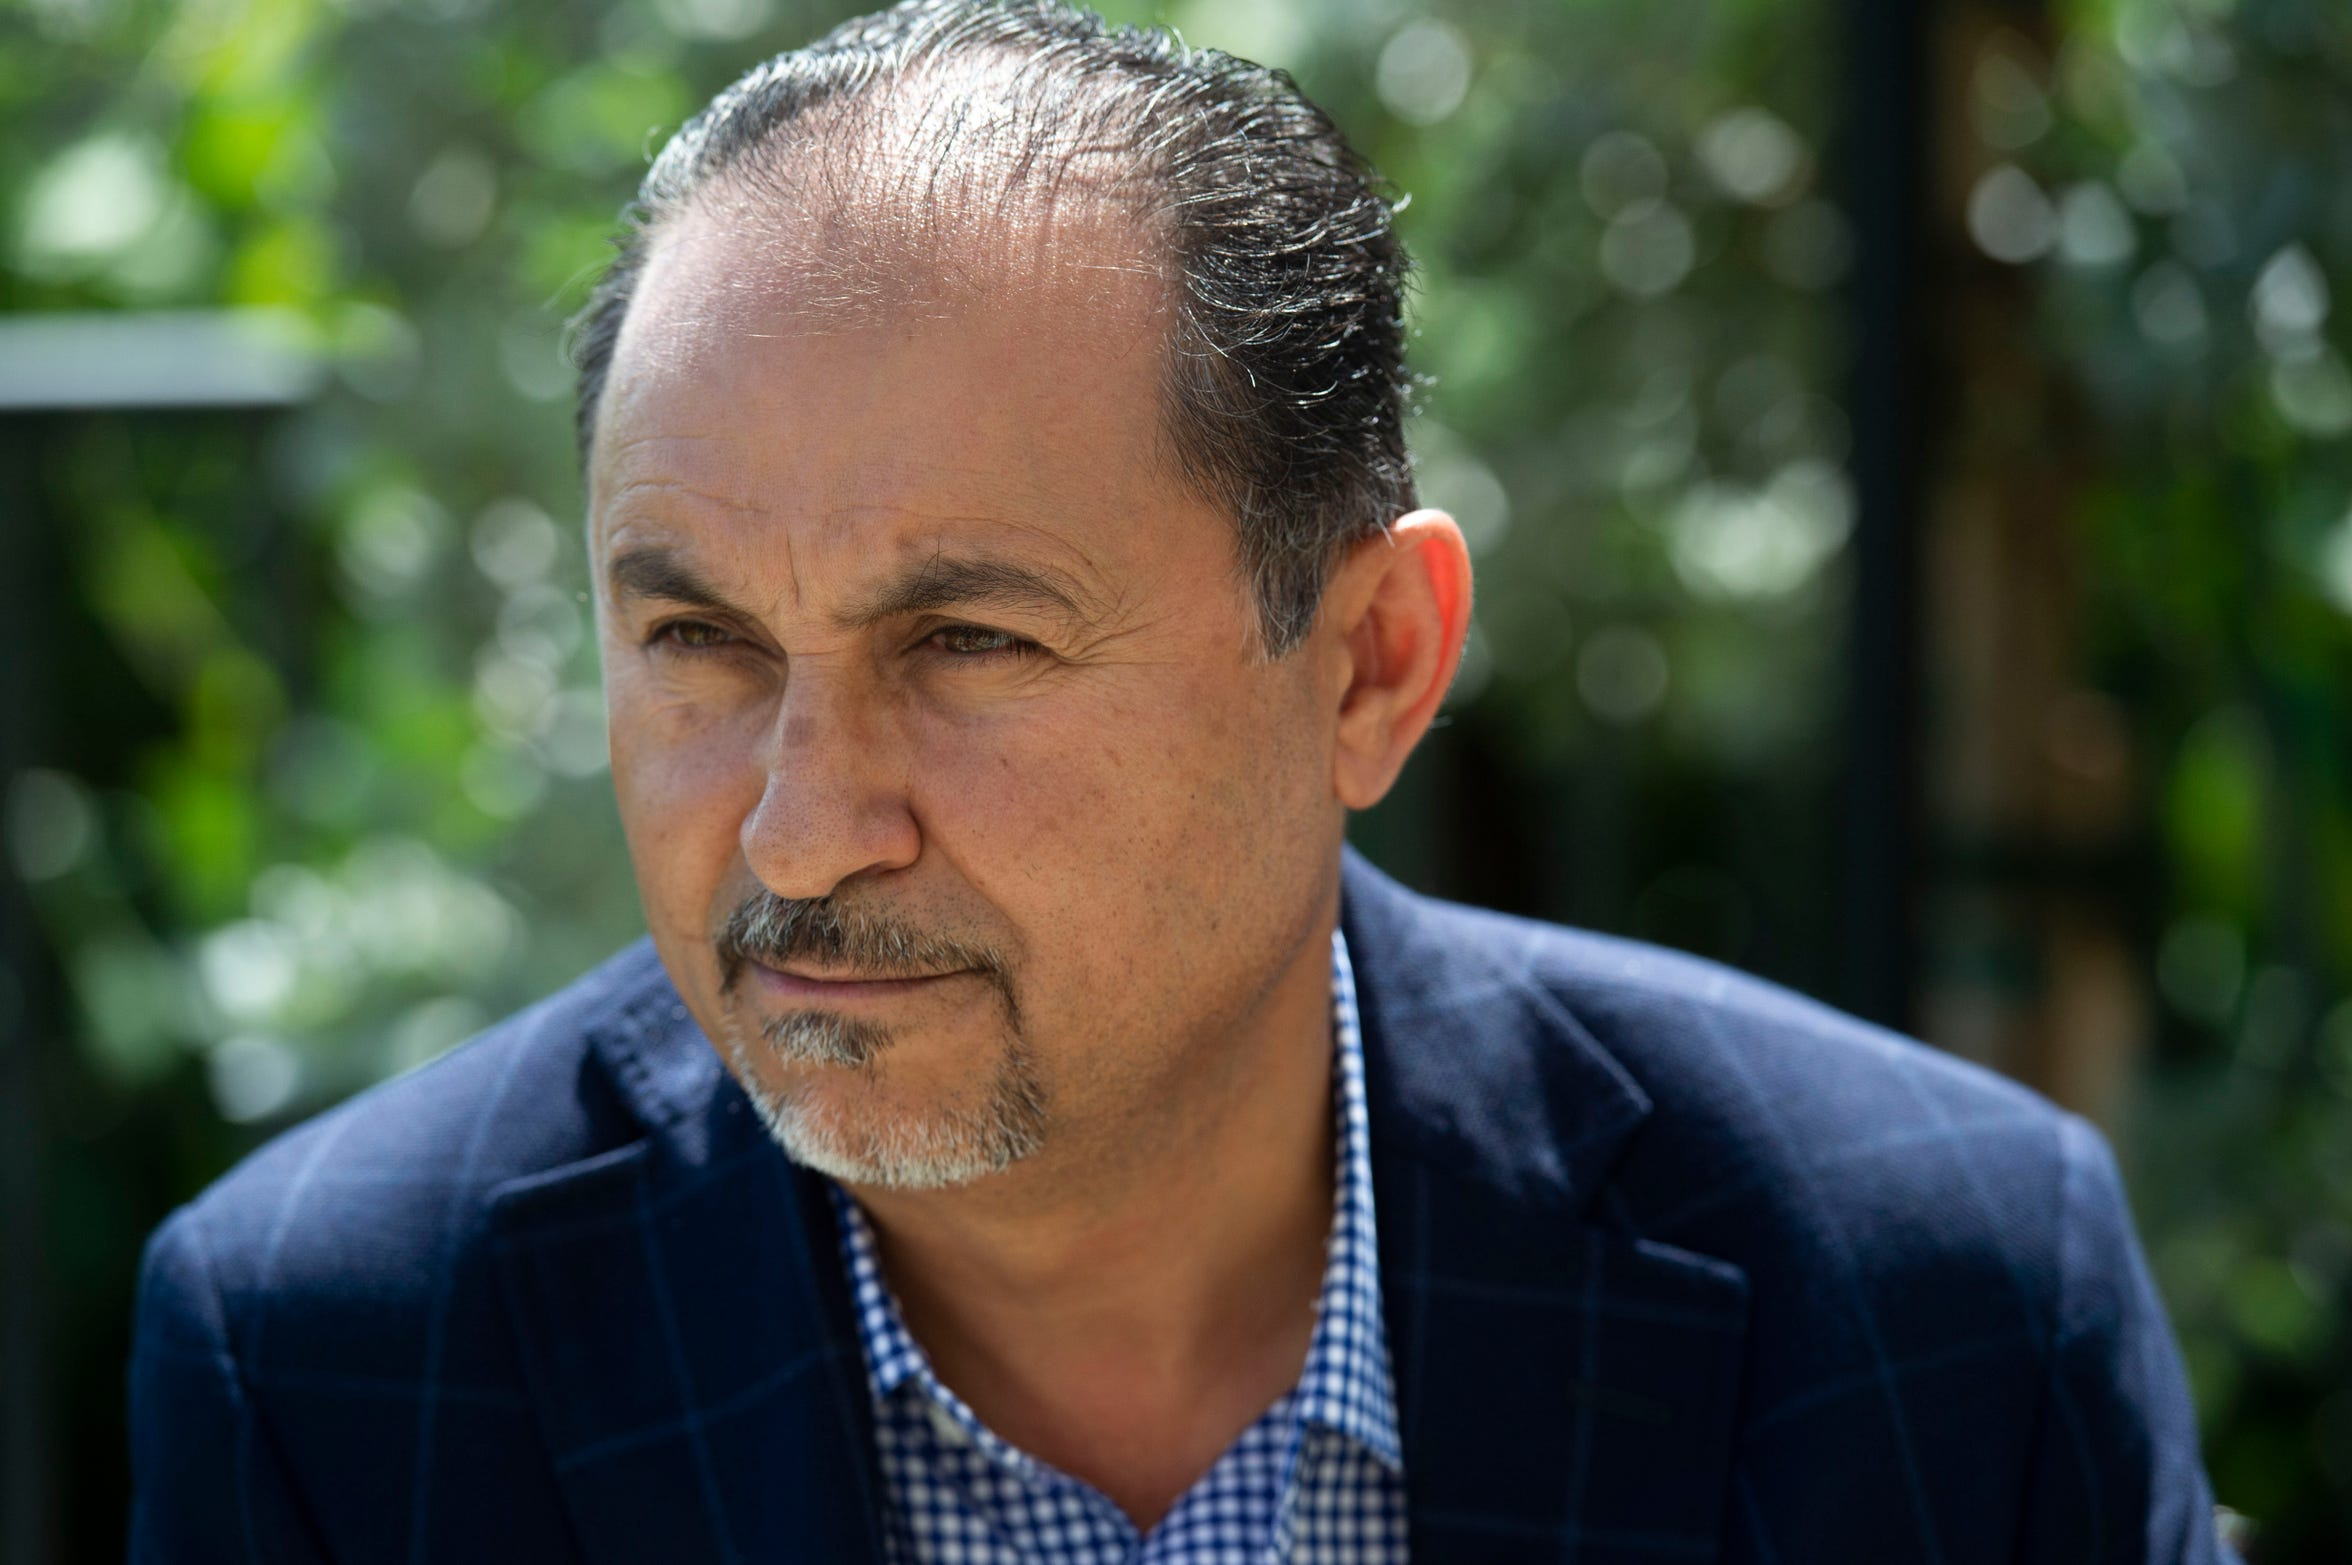 """We need to look at ourselves to make a decision based on issues, not party lines,"" said Raed Alshaibi, 50, of Indialantic, a hotelier who manages a beachfront resort in Melbourne. Alshaibi is highly concerned about the deteriorating environment in the privatization of beaches. ""Most of our economy is tourism. And if we don't take care of our shores and the environment, we're just going to drive people away, and it's going to affect us big time,"" he said. ""We should really focus on our strength... and this is our strength, this beautiful water."""